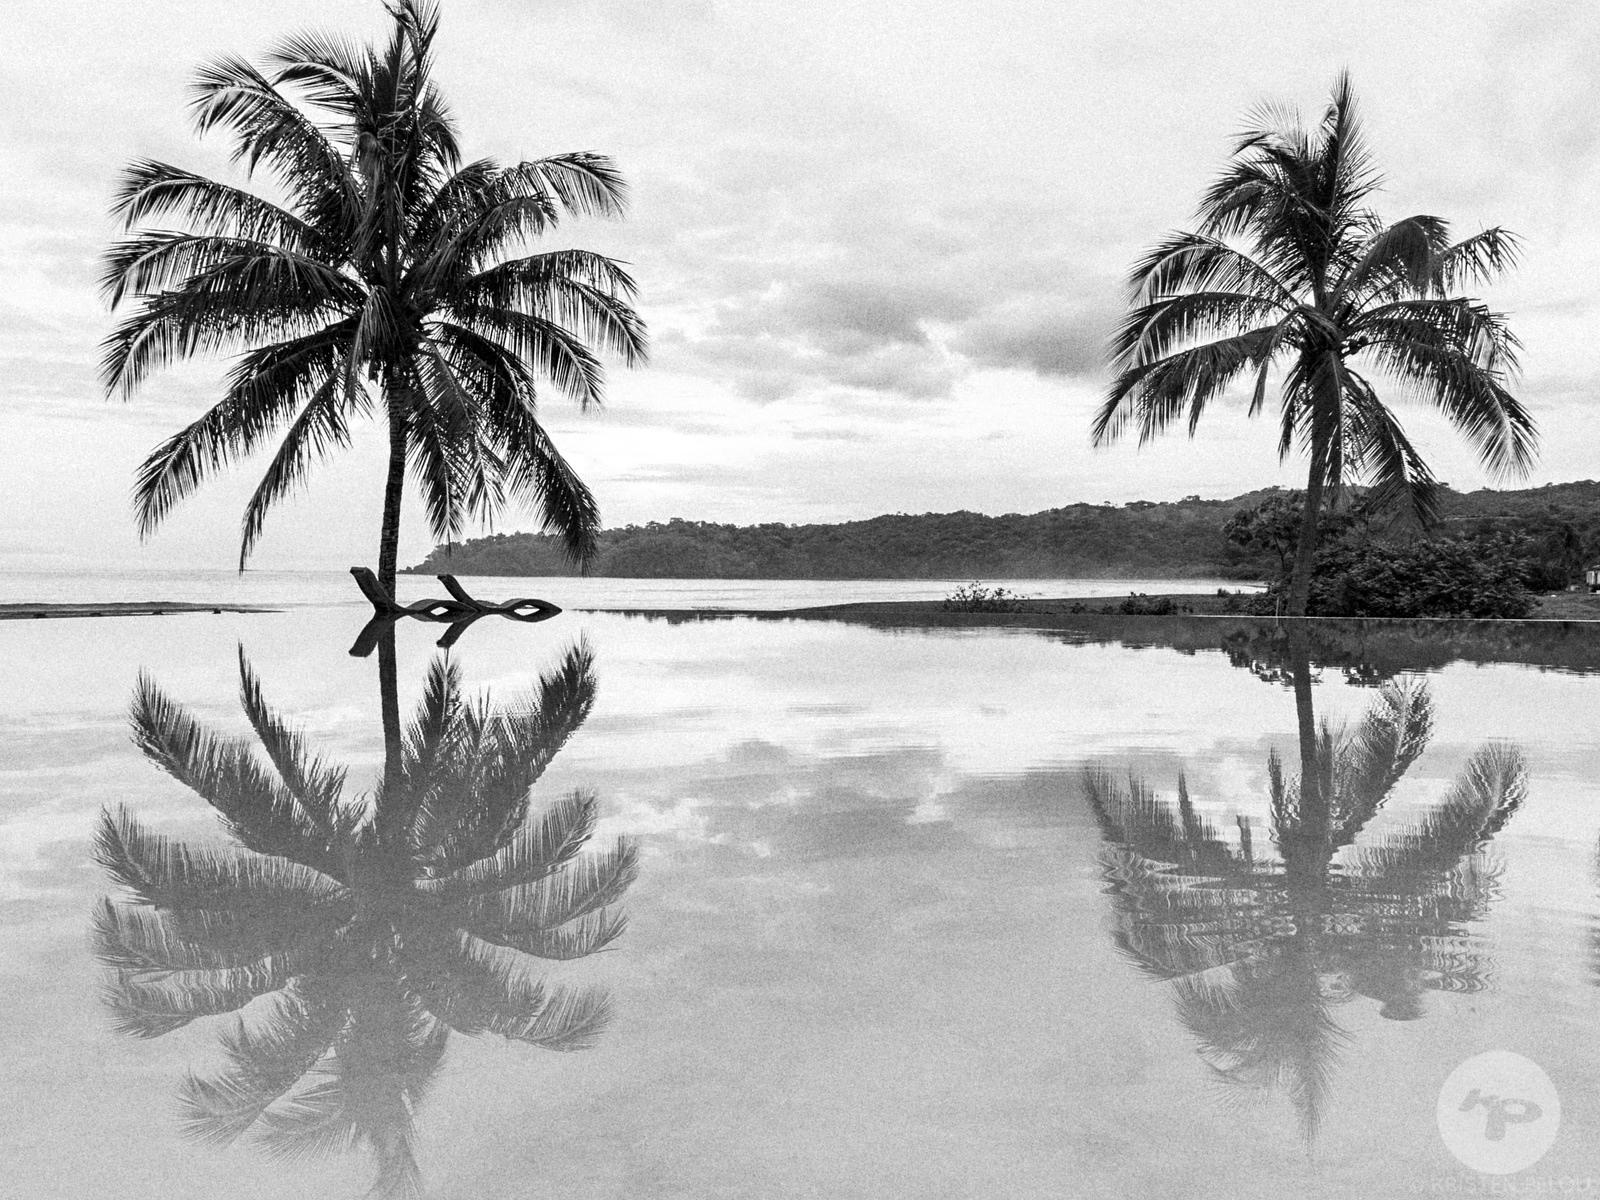 Palm trees and pool by the beach, Panama. Photo : Kristen Pelou